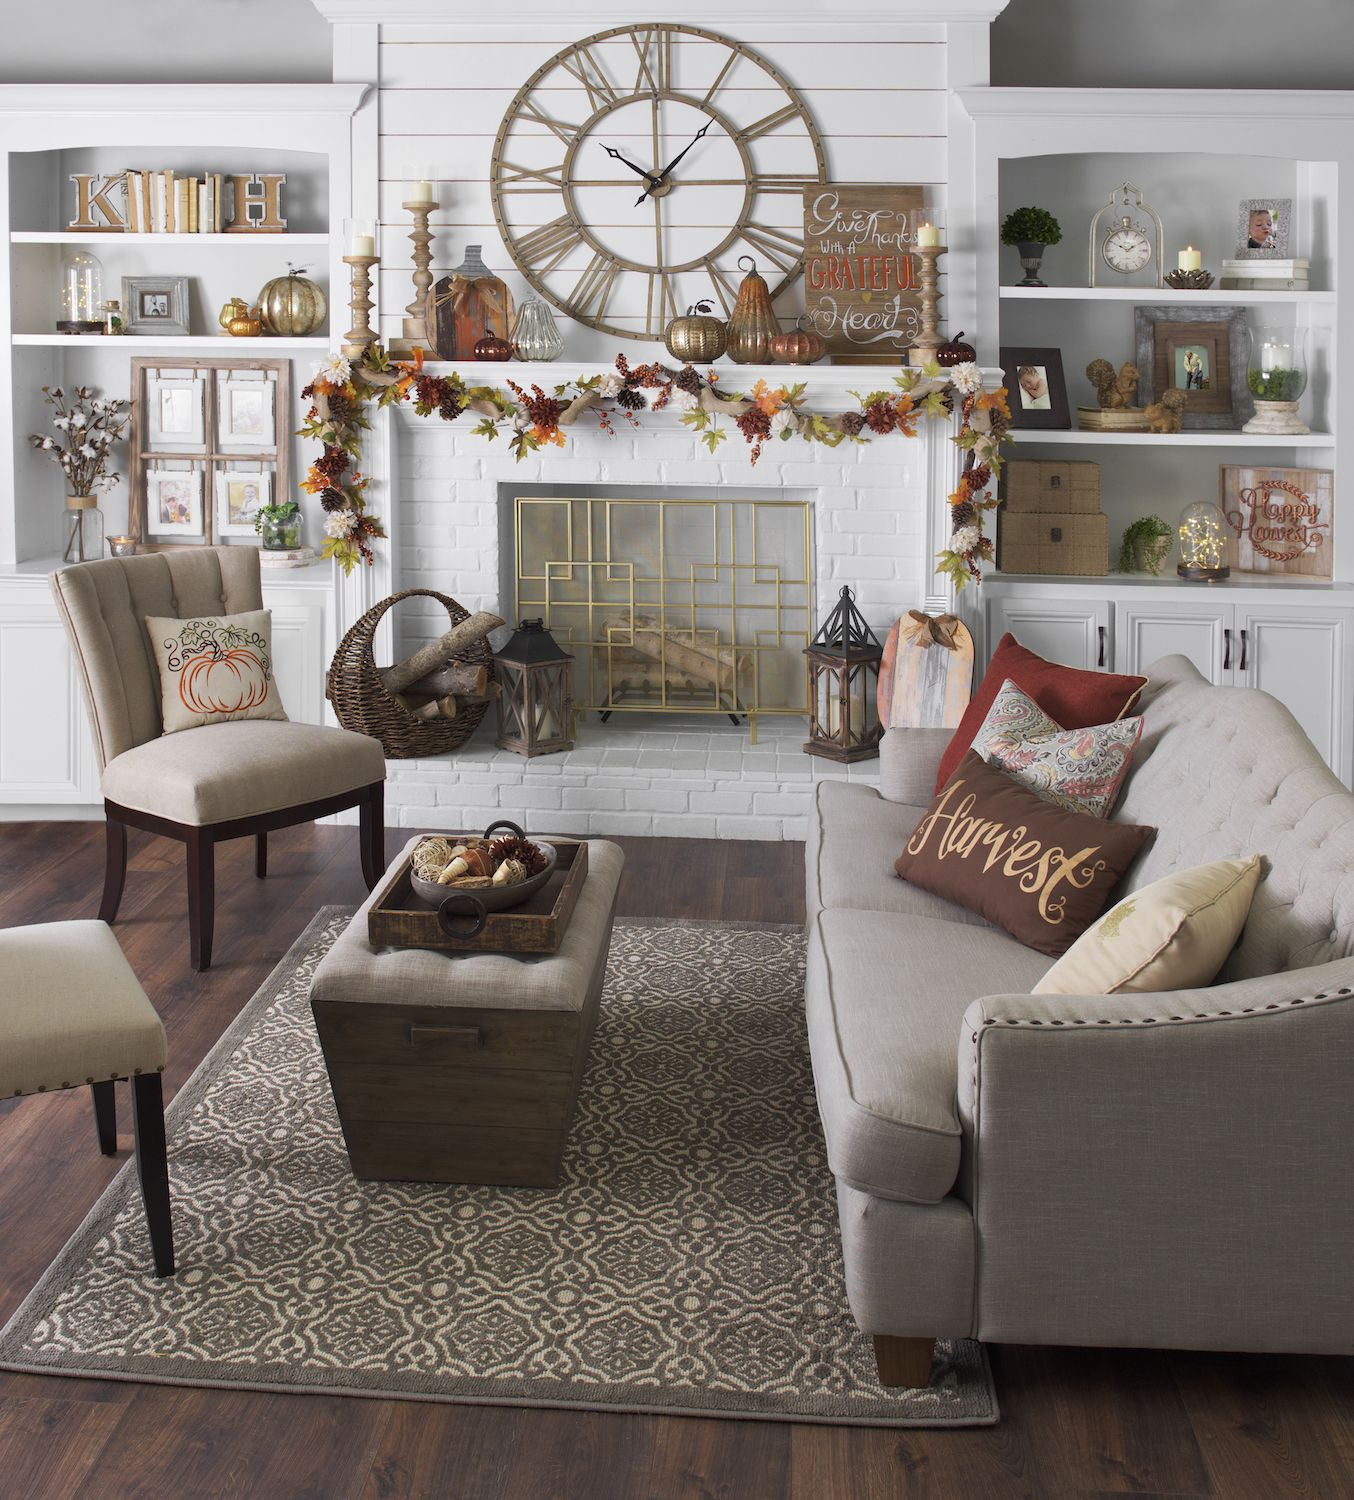 Home Decor Shop Design Ideas: Your Living Room Is A Place Where Your Friends And Family